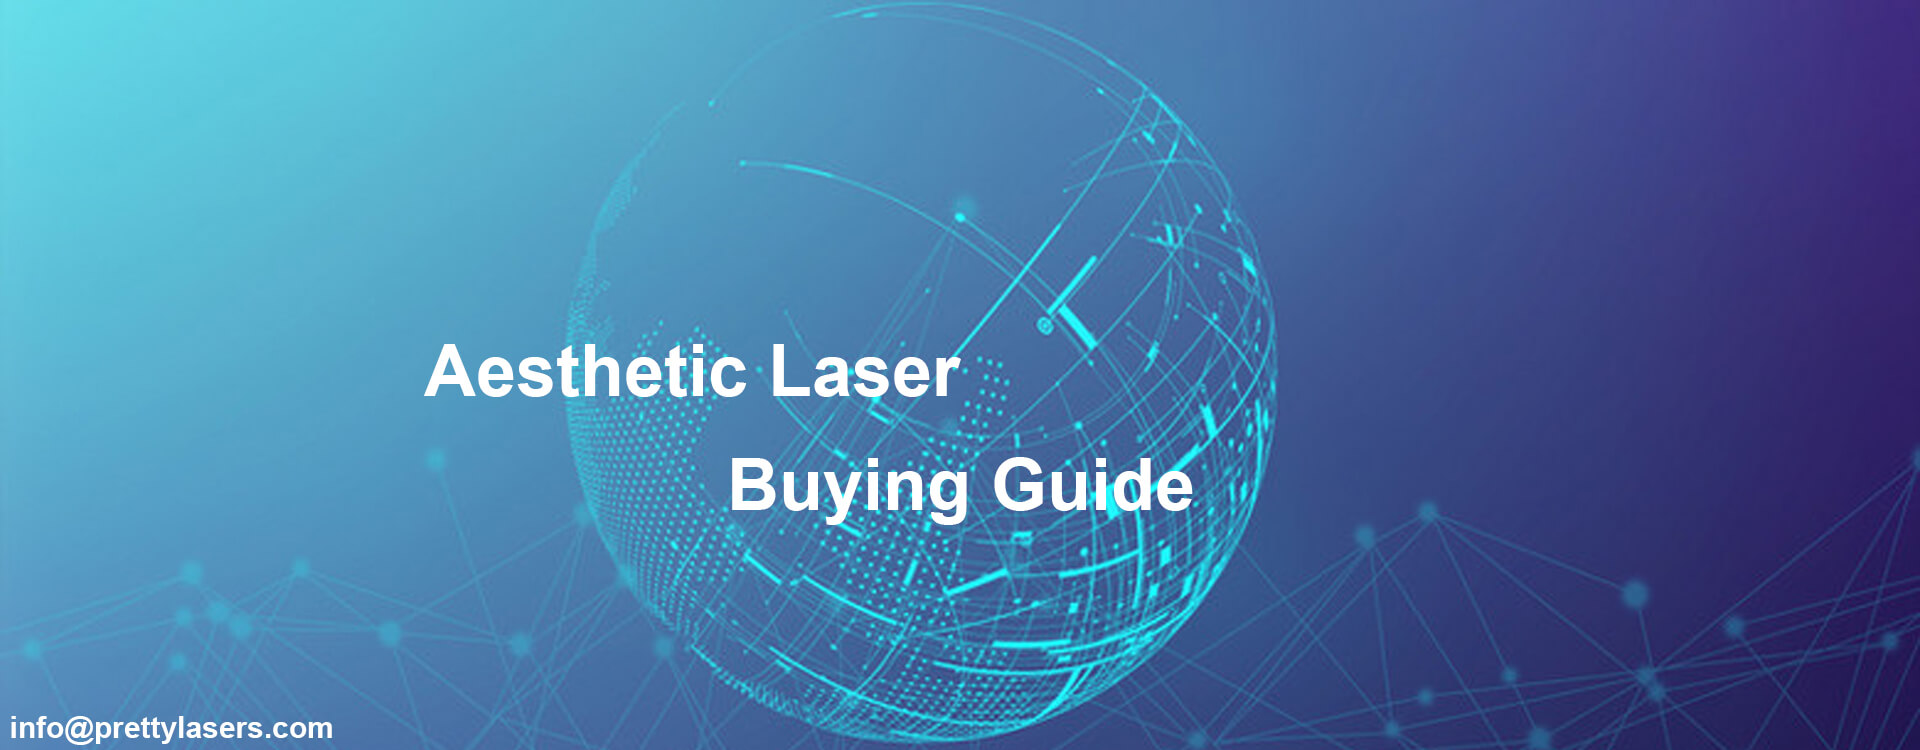 13 Key Questions to Ask Before Buying A Aesthetic Laser